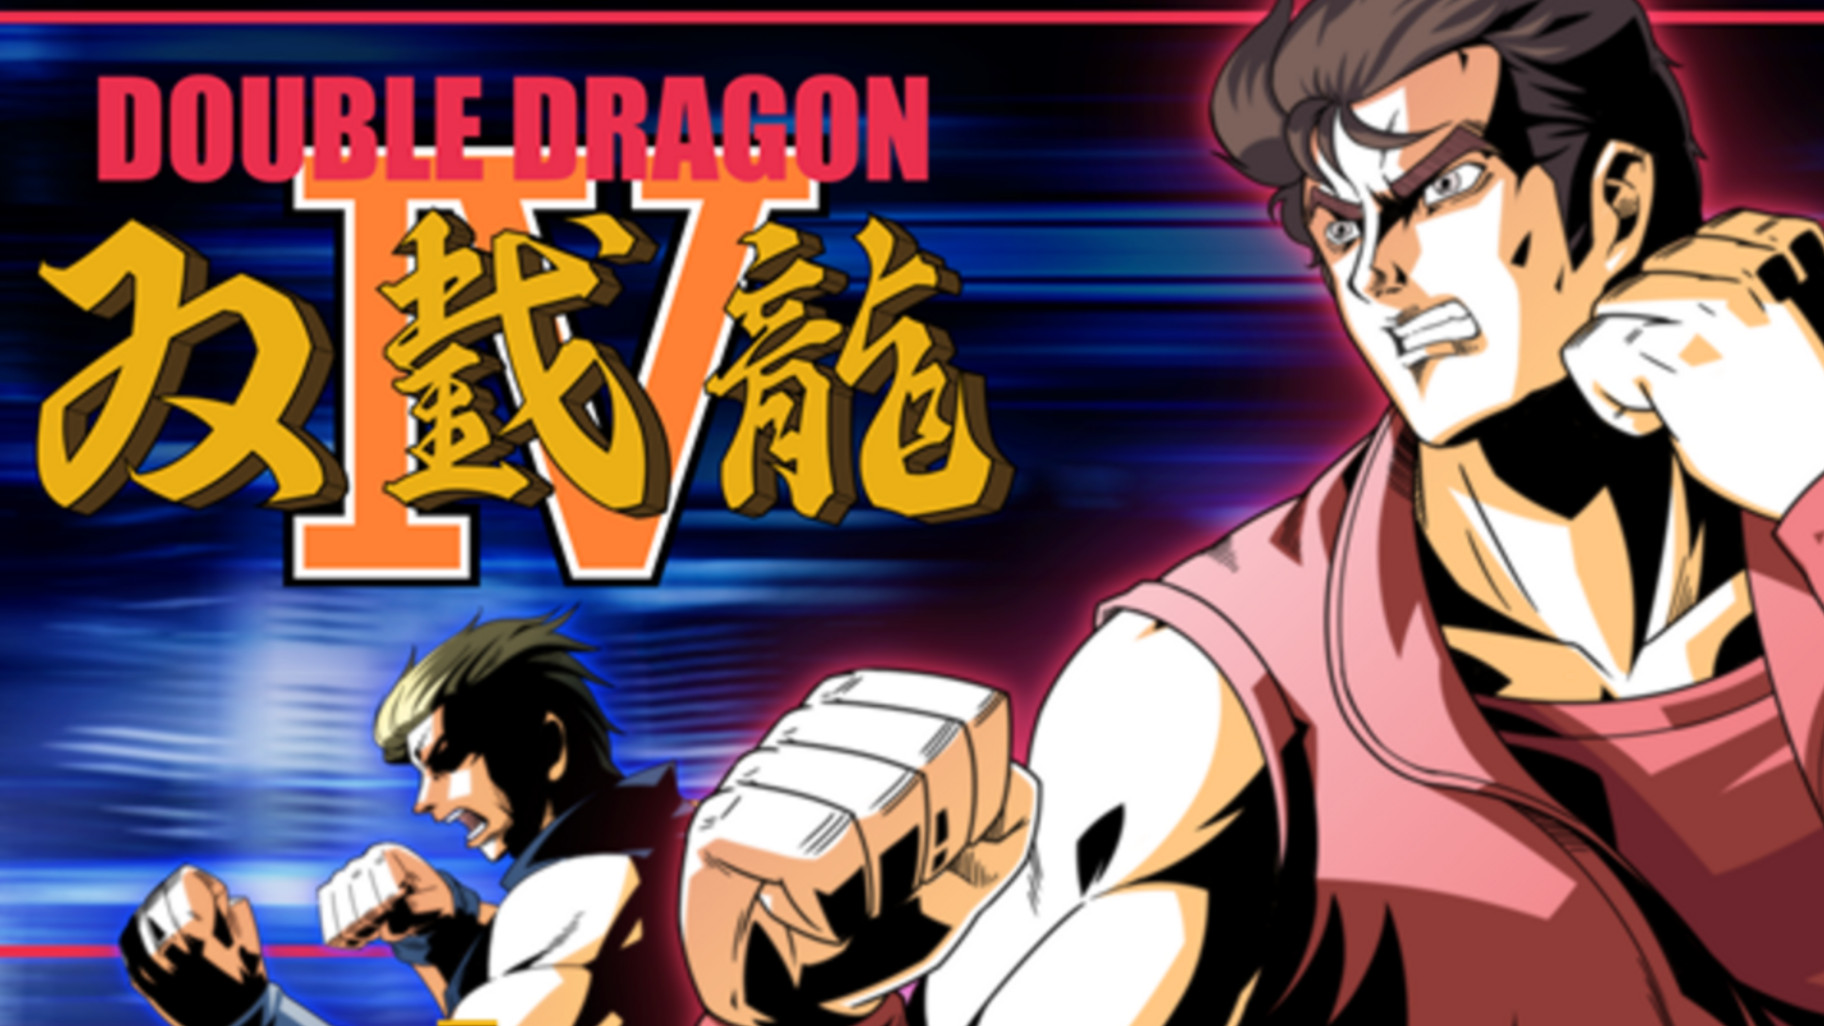 Double Dragon Iv Coming To Switch In September Nintendo Everything